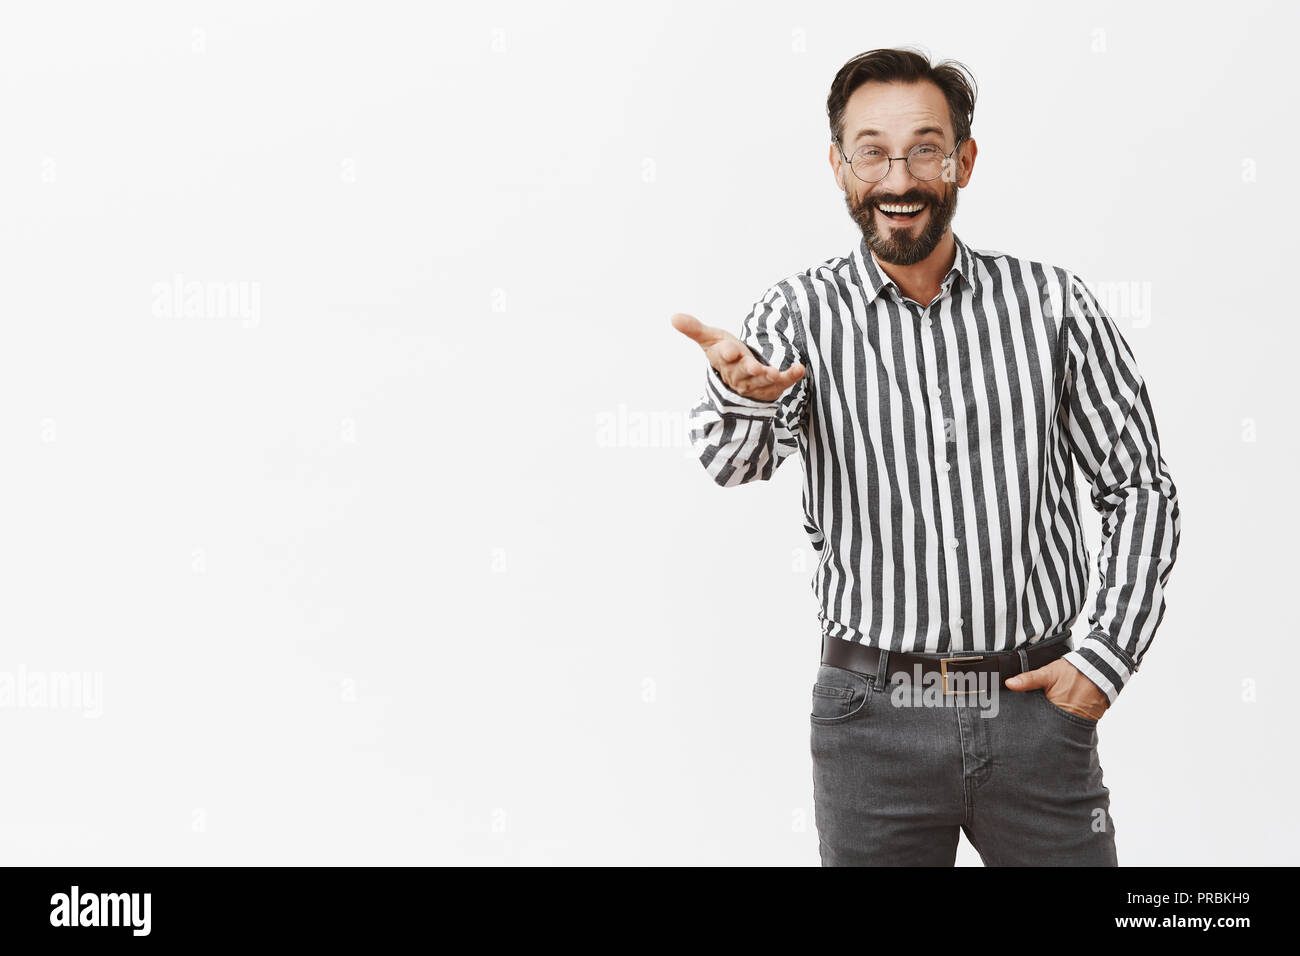 Friend, long time no see. Portrait of pleased surprised handsome adult european in striped shirt and formal pants, pointing with palm at camera and smiling broadly, greeting familiar person on meeting - Stock Image